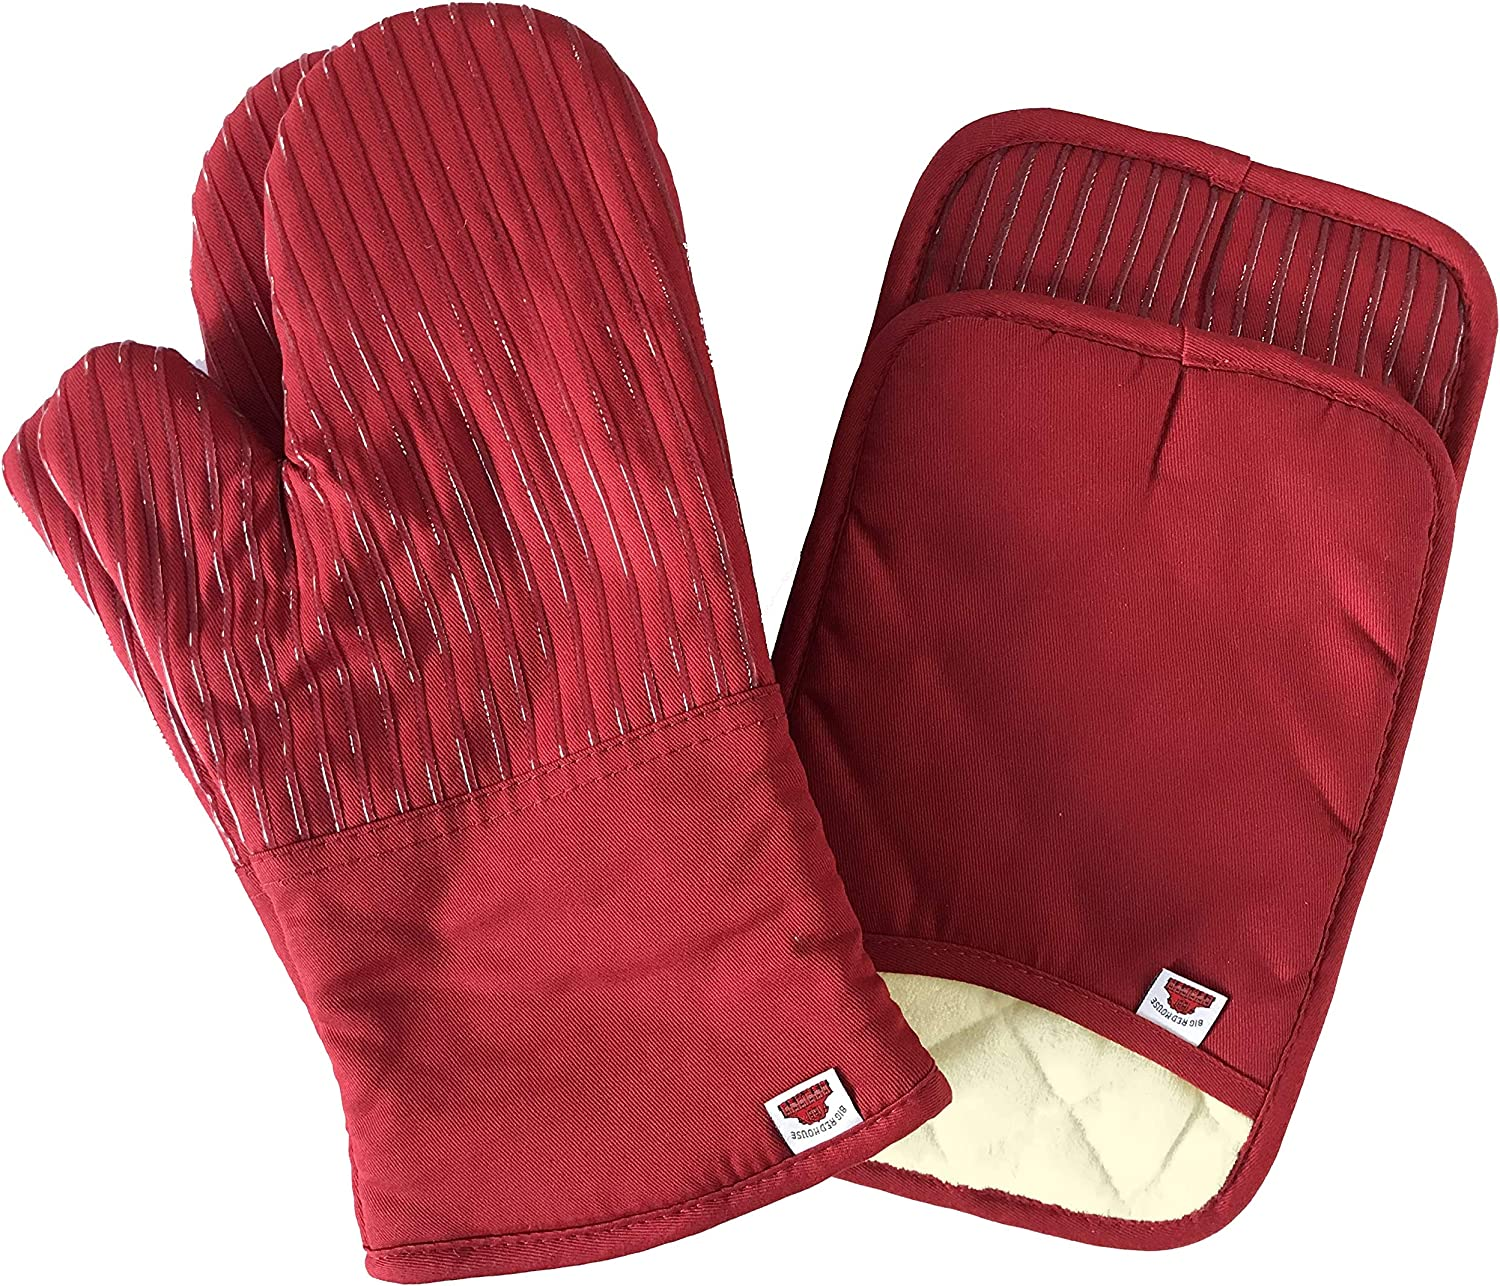 BIG RED HOUSE Oven Mitts and Pot Holders Sets, with the Heat Resistance of Silicone and Flexibility of Cotton, Recycled Cotton Infill, Terrycloth Lining, 480 F Heat Resistant Pair Red